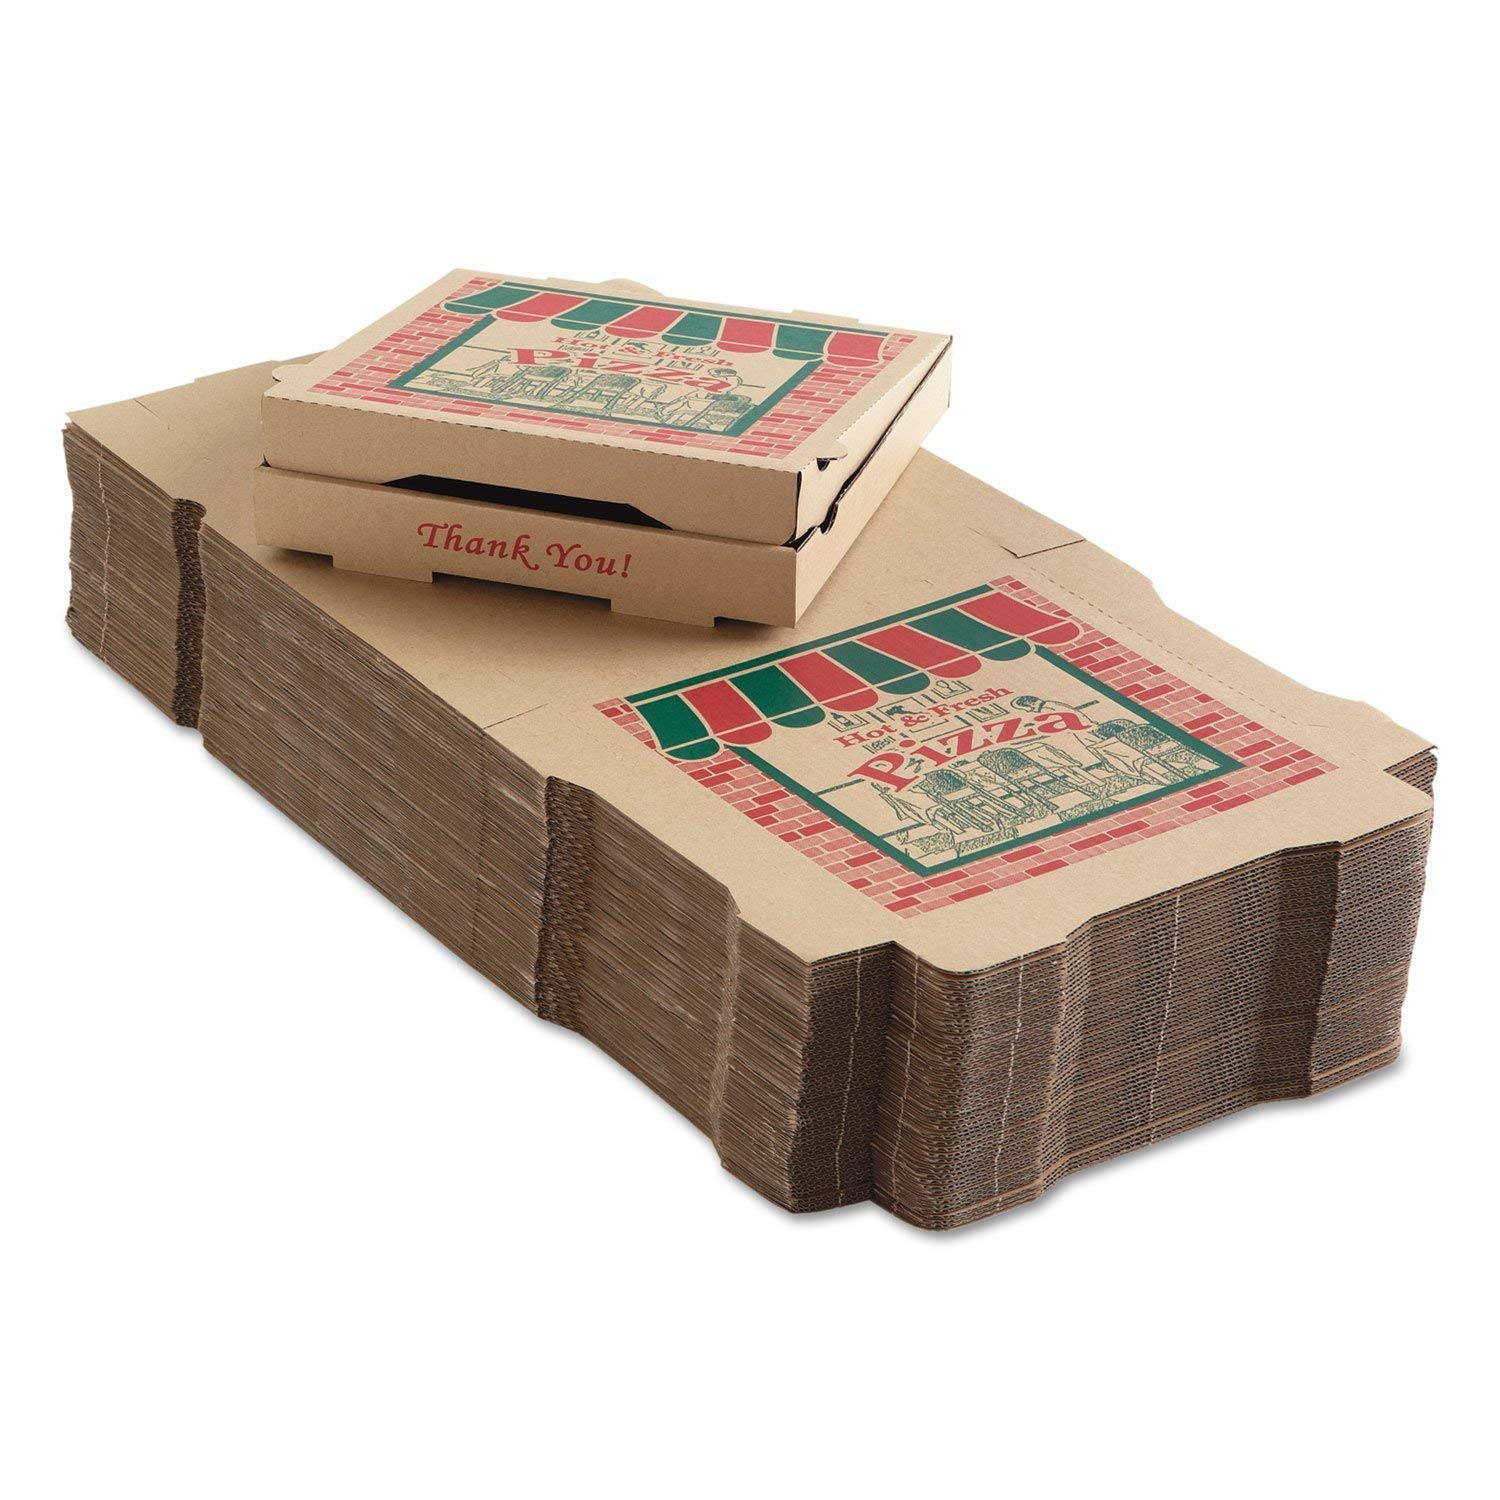 White Printed Paperboard Take Out Catering Pizza Boxes 12x12x2-Inch Corrugated Pizza Boxes 50 SafePro COR12